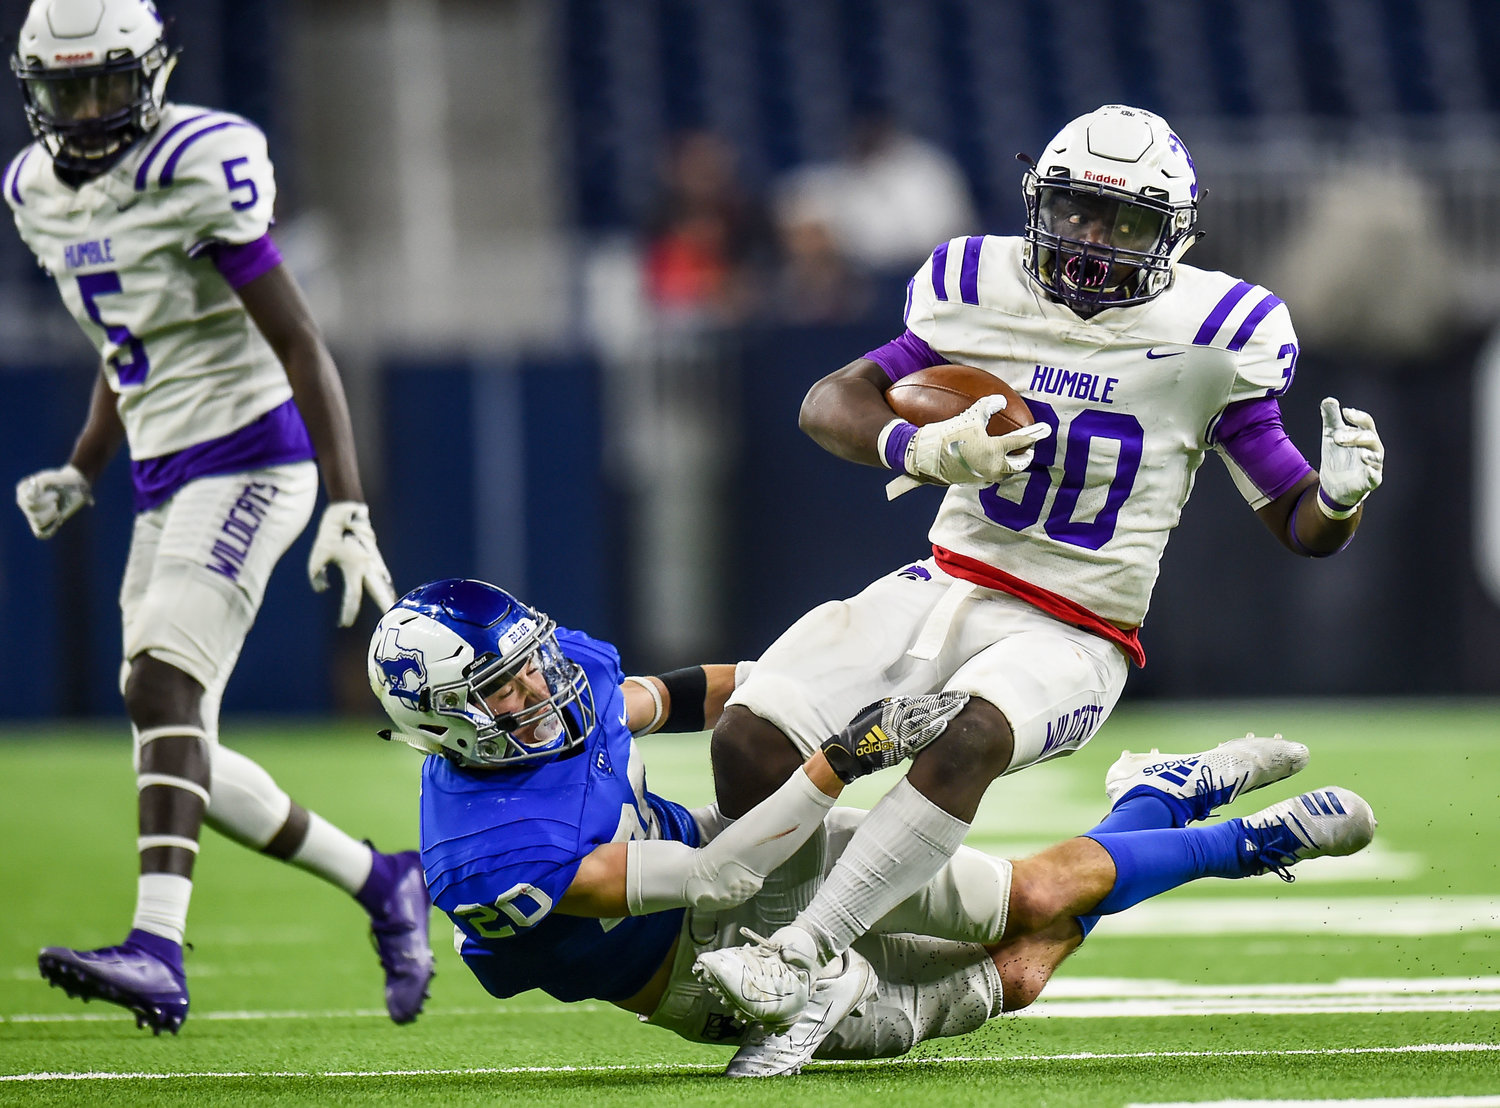 Houston, Tx. Nov. 30, 2019: Taylor's Adel Barbarawi (30) makes the stop on Humbles X'zavier Sidney (30) during the regional semifinal playoff game between Katy Taylor and Humble at NRG Stadium in Houston. (Photo by Mark Goodman / Katy Times)